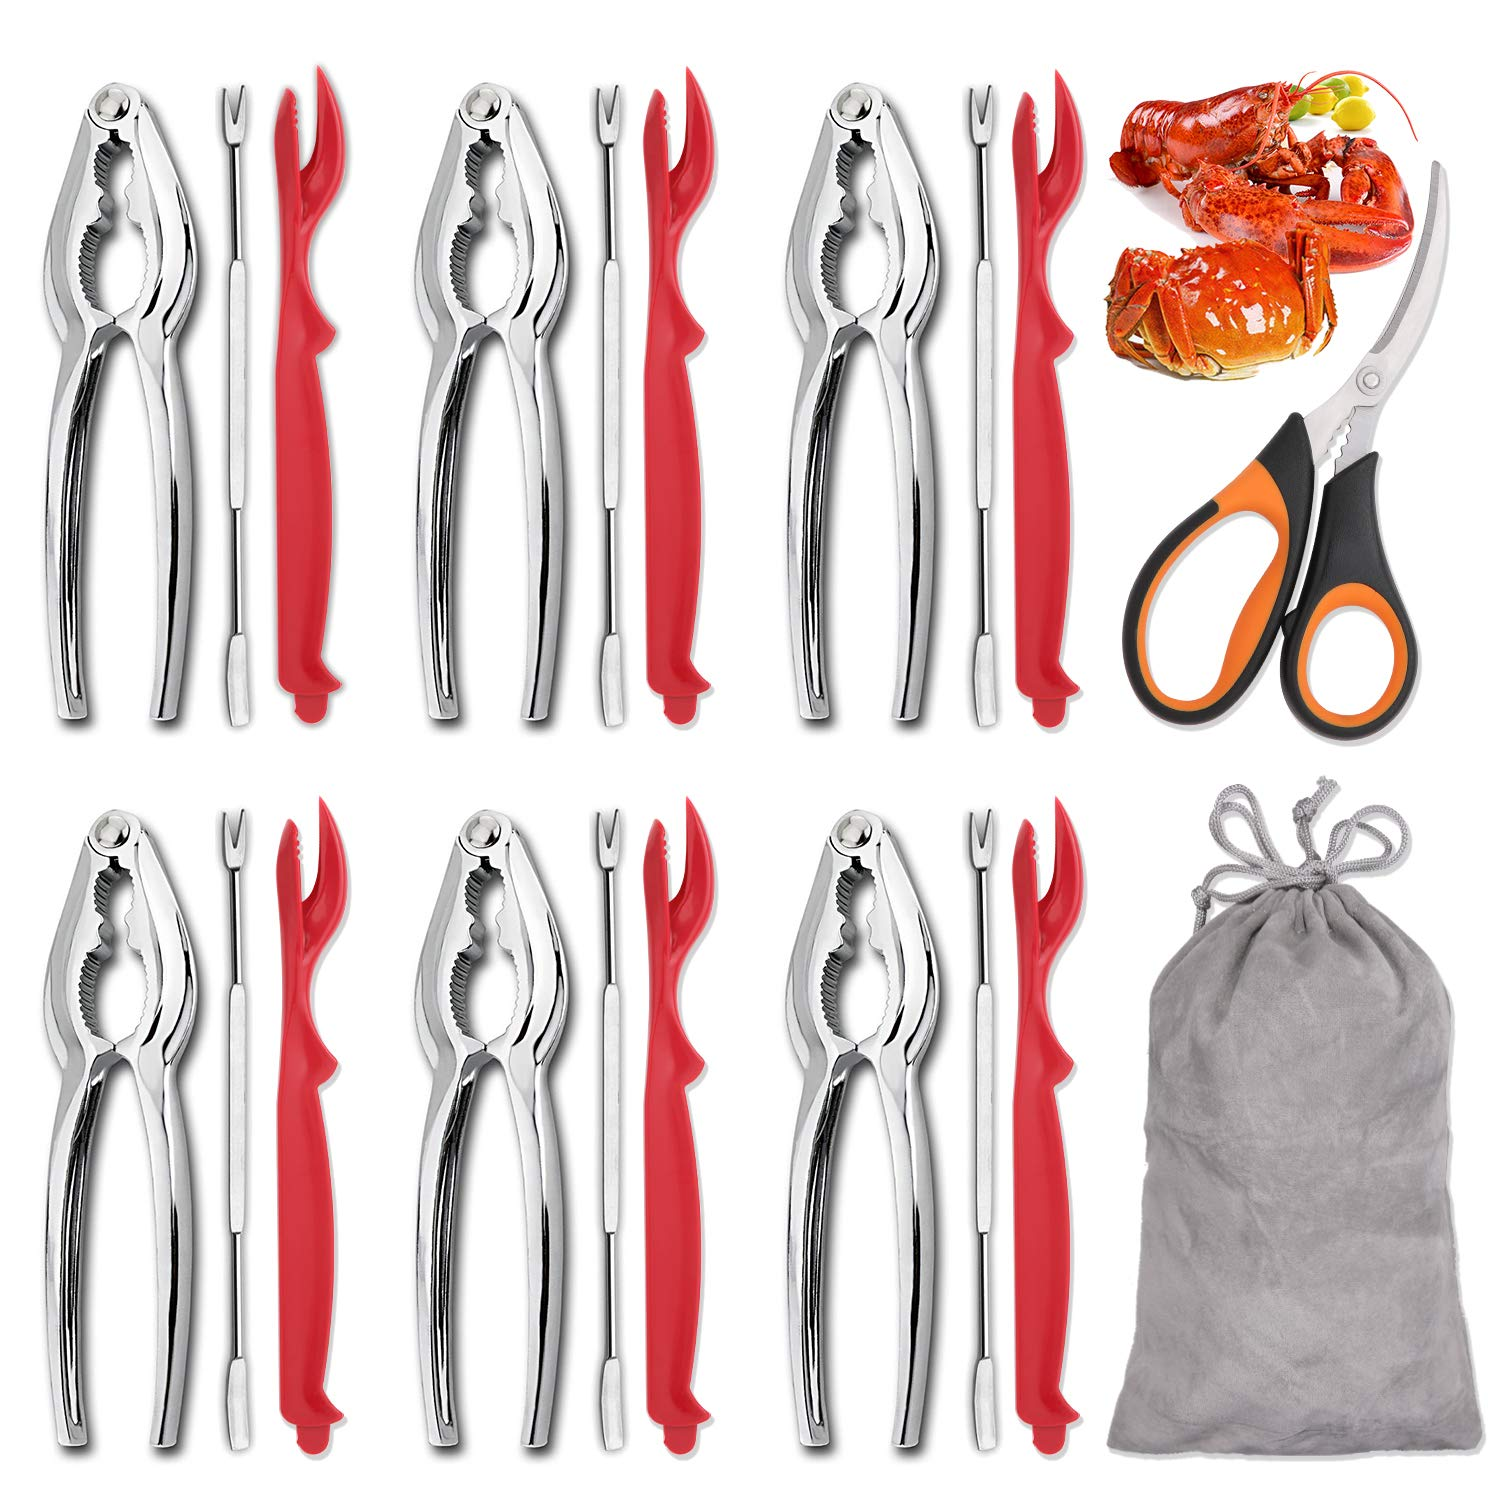 Hiware 19-piece Seafood Tools Set includes 6 Crab Crackers, 6 Lobster Shellers, 6 Crab Leg Forks/Picks and 1 Seafood Scissors & Storage Bag - Nut Cracker Set